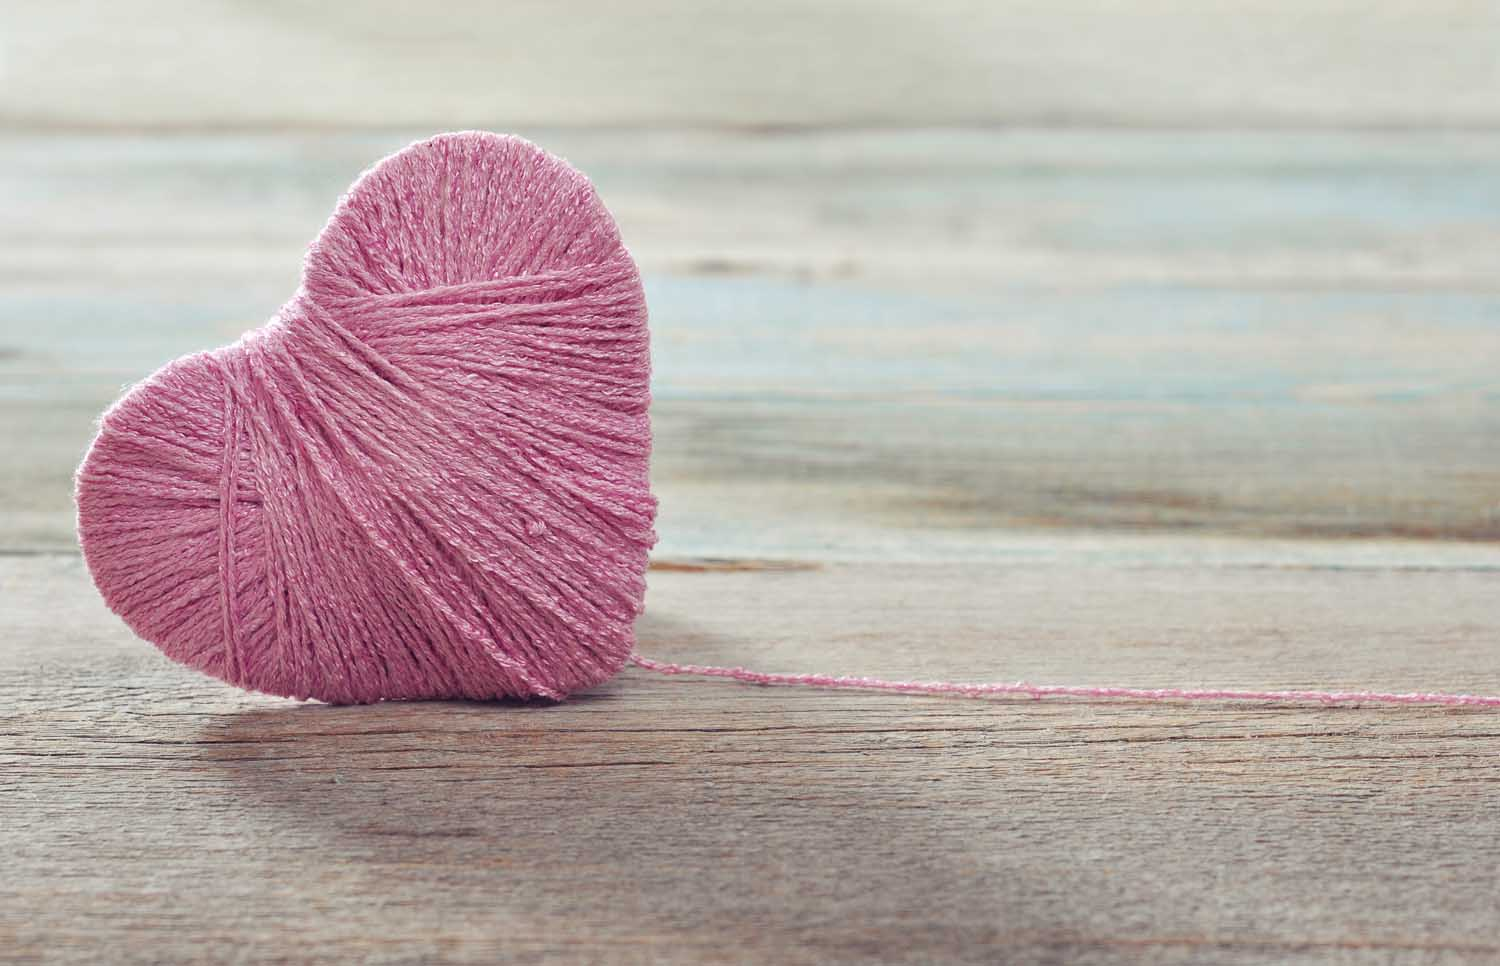 pink heart for a NICU baby, wrapped in pink string on wooden table